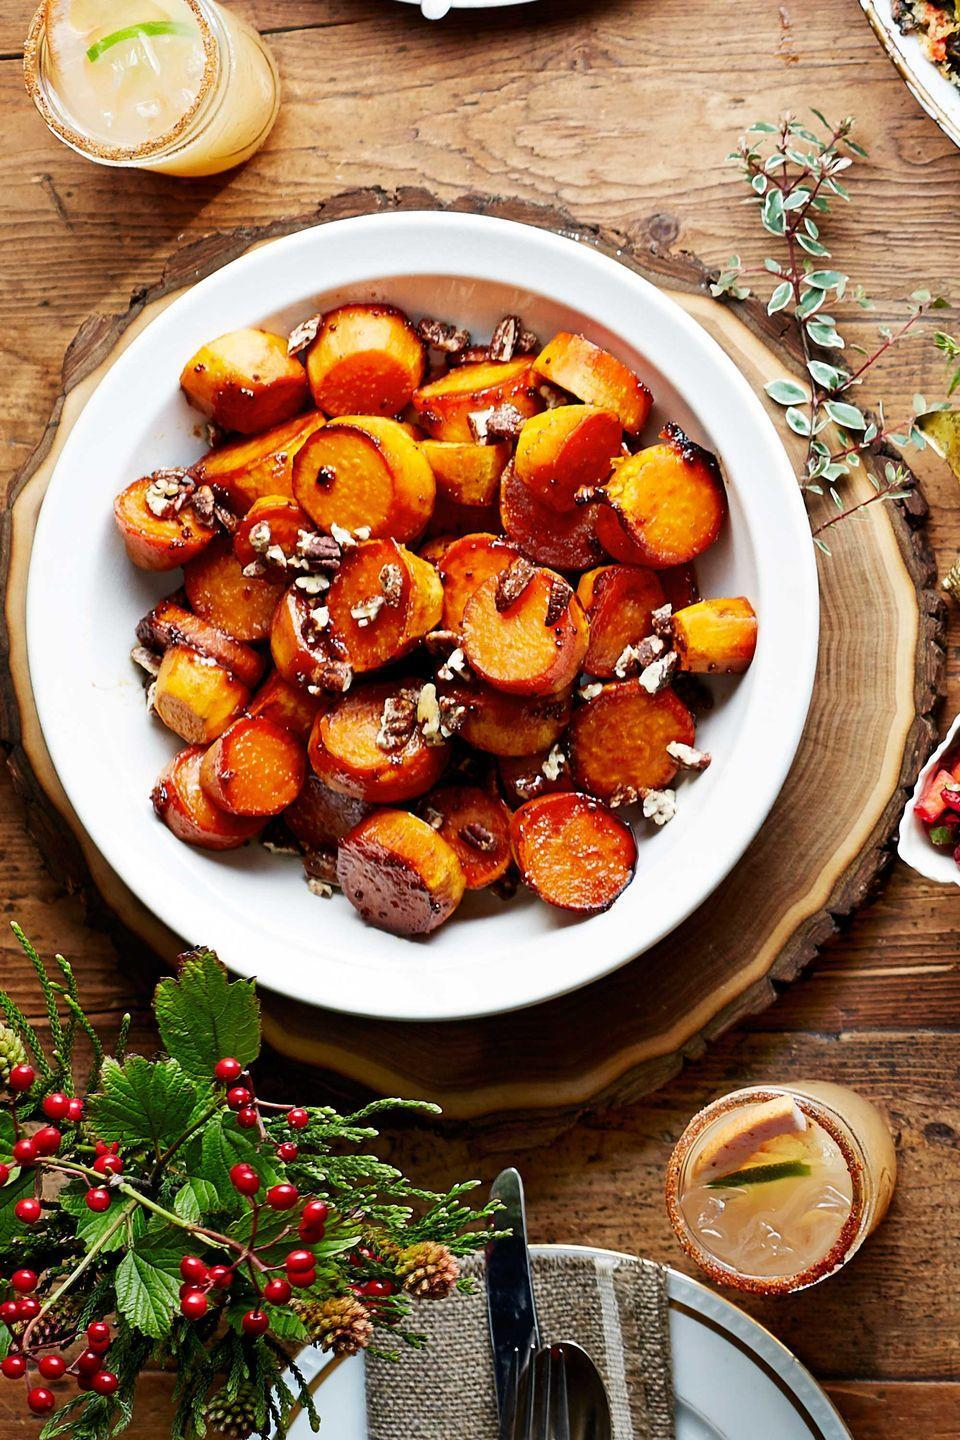 """<p>Store-bought candied or spiced pecans add crunch to this comfort food dish. To make ahead, cover and chill cooked potatoes in glaze in baking dishes the day before. Let stand at room temperature, then reheat covered at 350F for about 20 minutes or until thoroughly heated.</p><p><strong><a href=""""https://www.countryliving.com/food-drinks/recipes/a5913/sorghum-sweet-potatoes-recipe-clx1114/"""" rel=""""nofollow noopener"""" target=""""_blank"""" data-ylk=""""slk:Get the recipe"""" class=""""link rapid-noclick-resp"""">Get the recipe</a>.</strong></p>"""